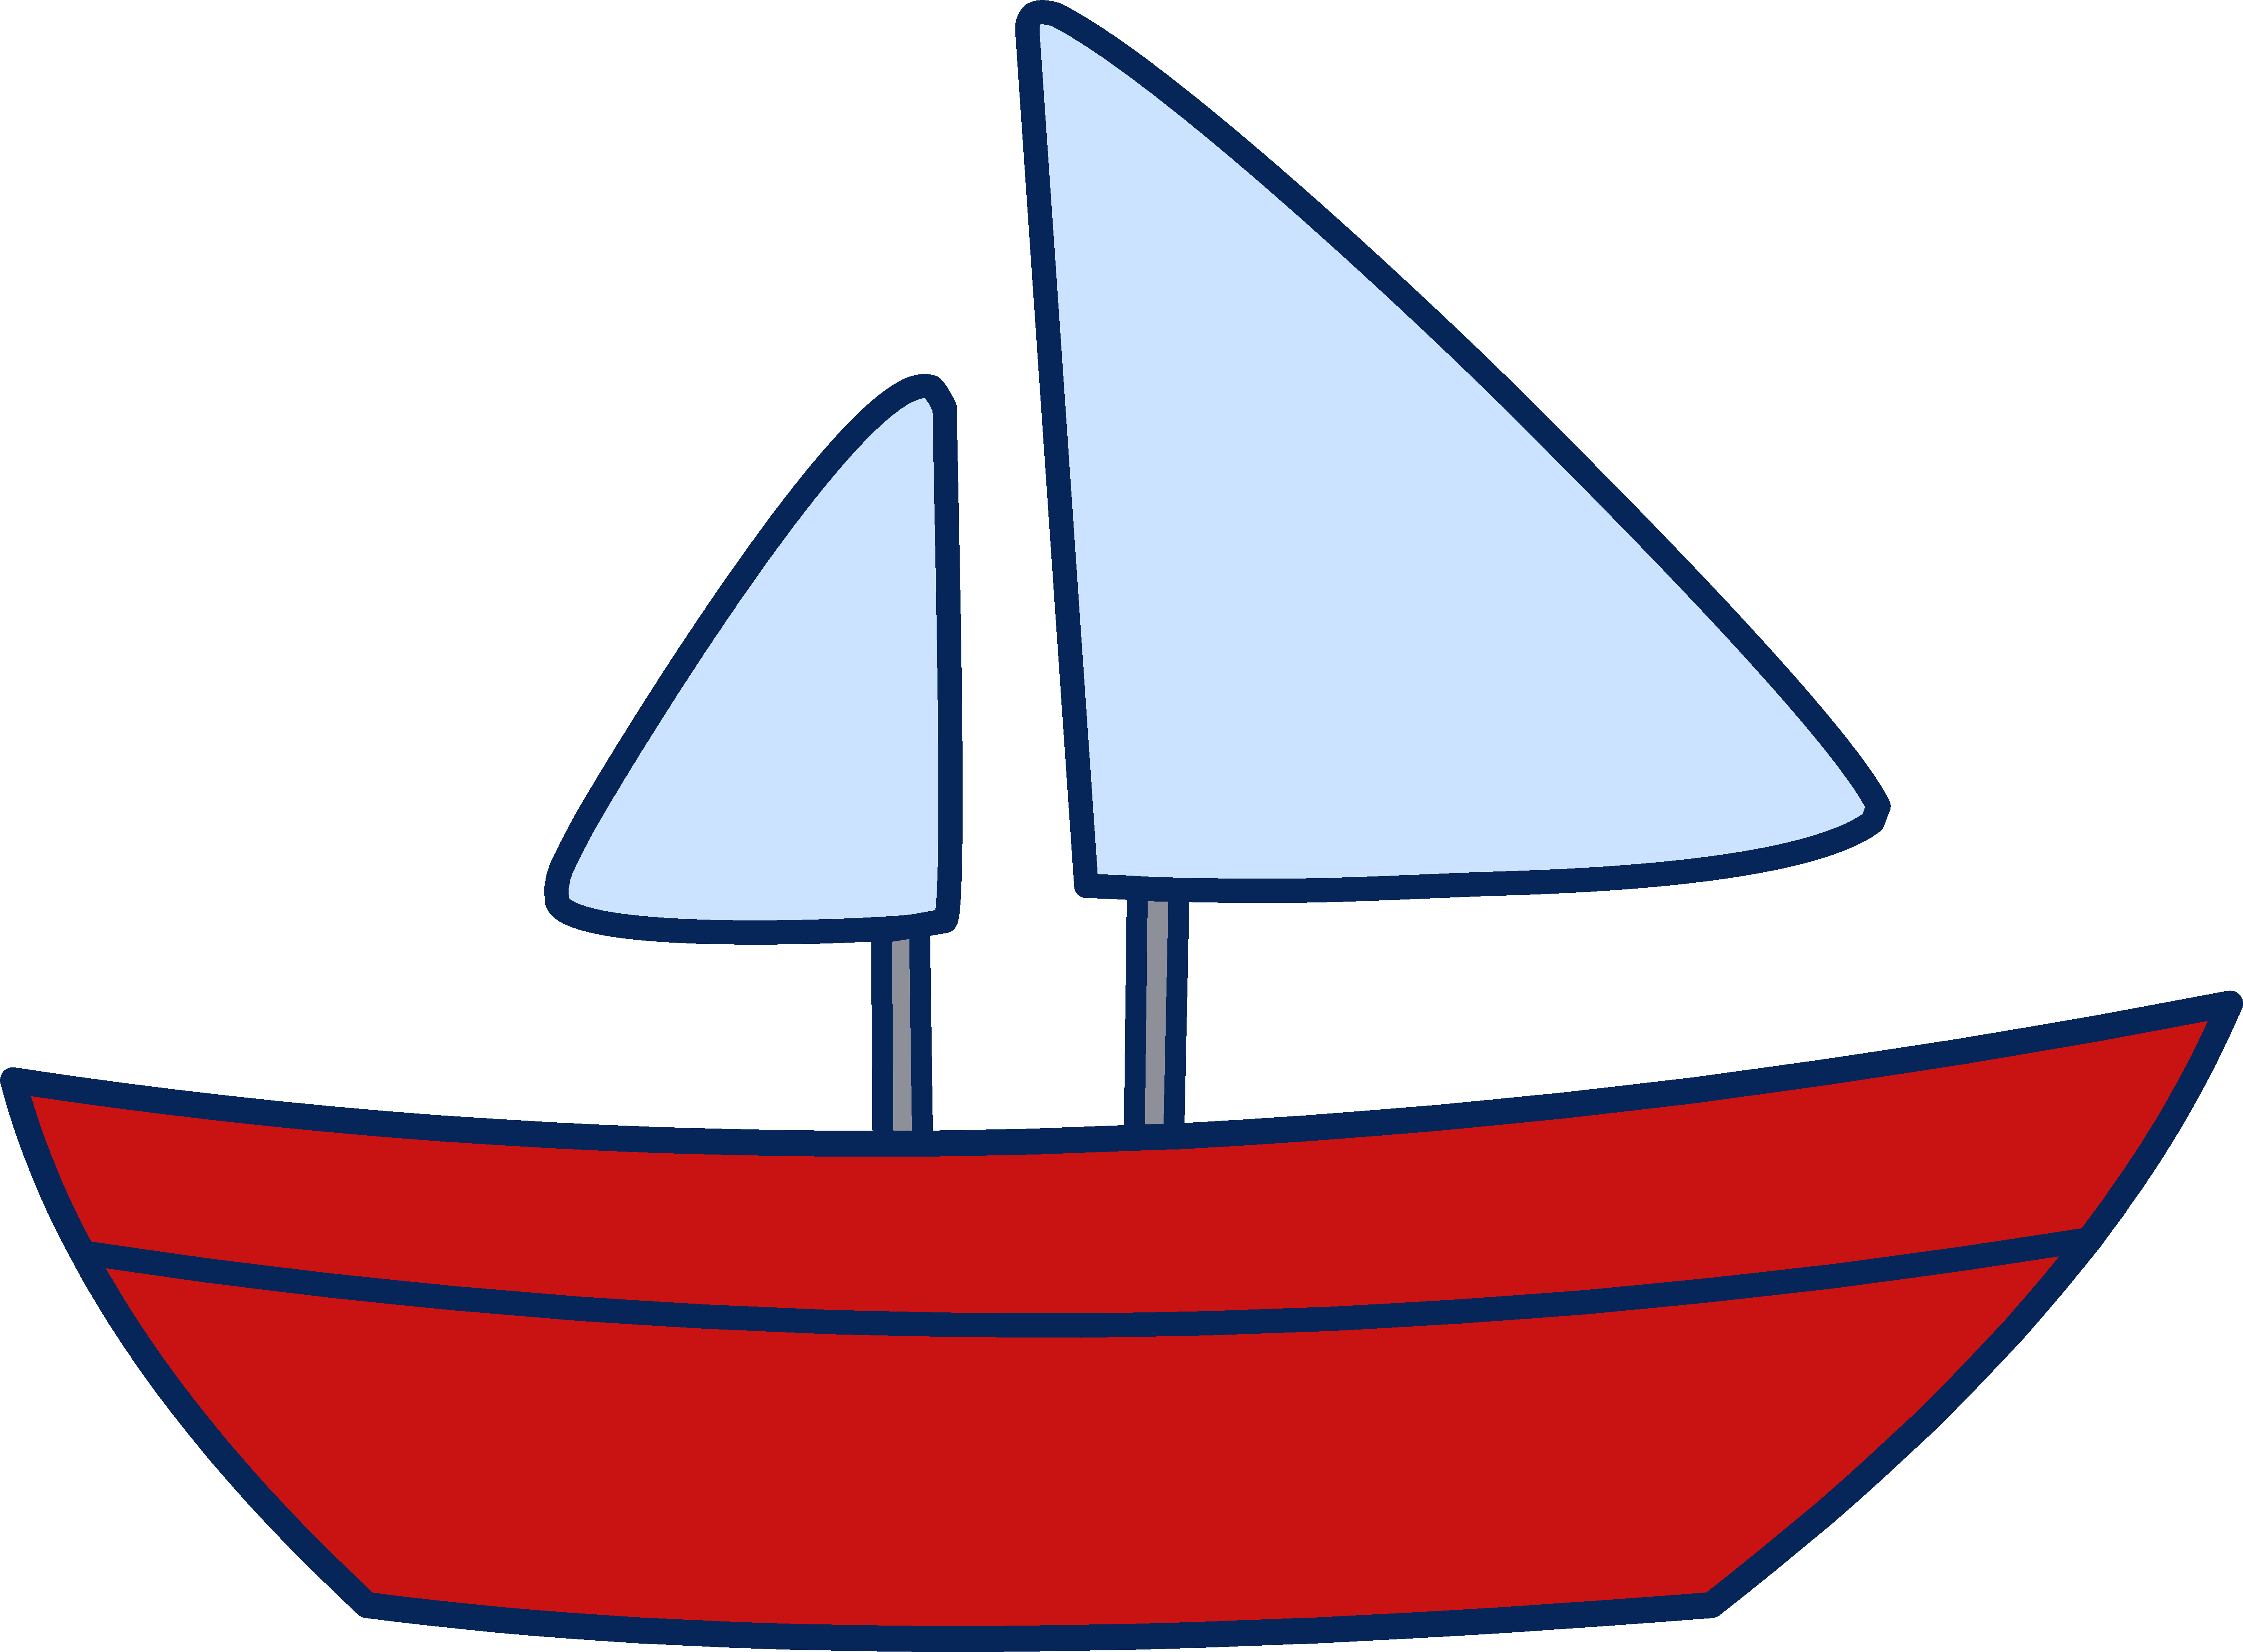 Images For Row Boat Clip Art-Images For Row Boat Clip Art-14